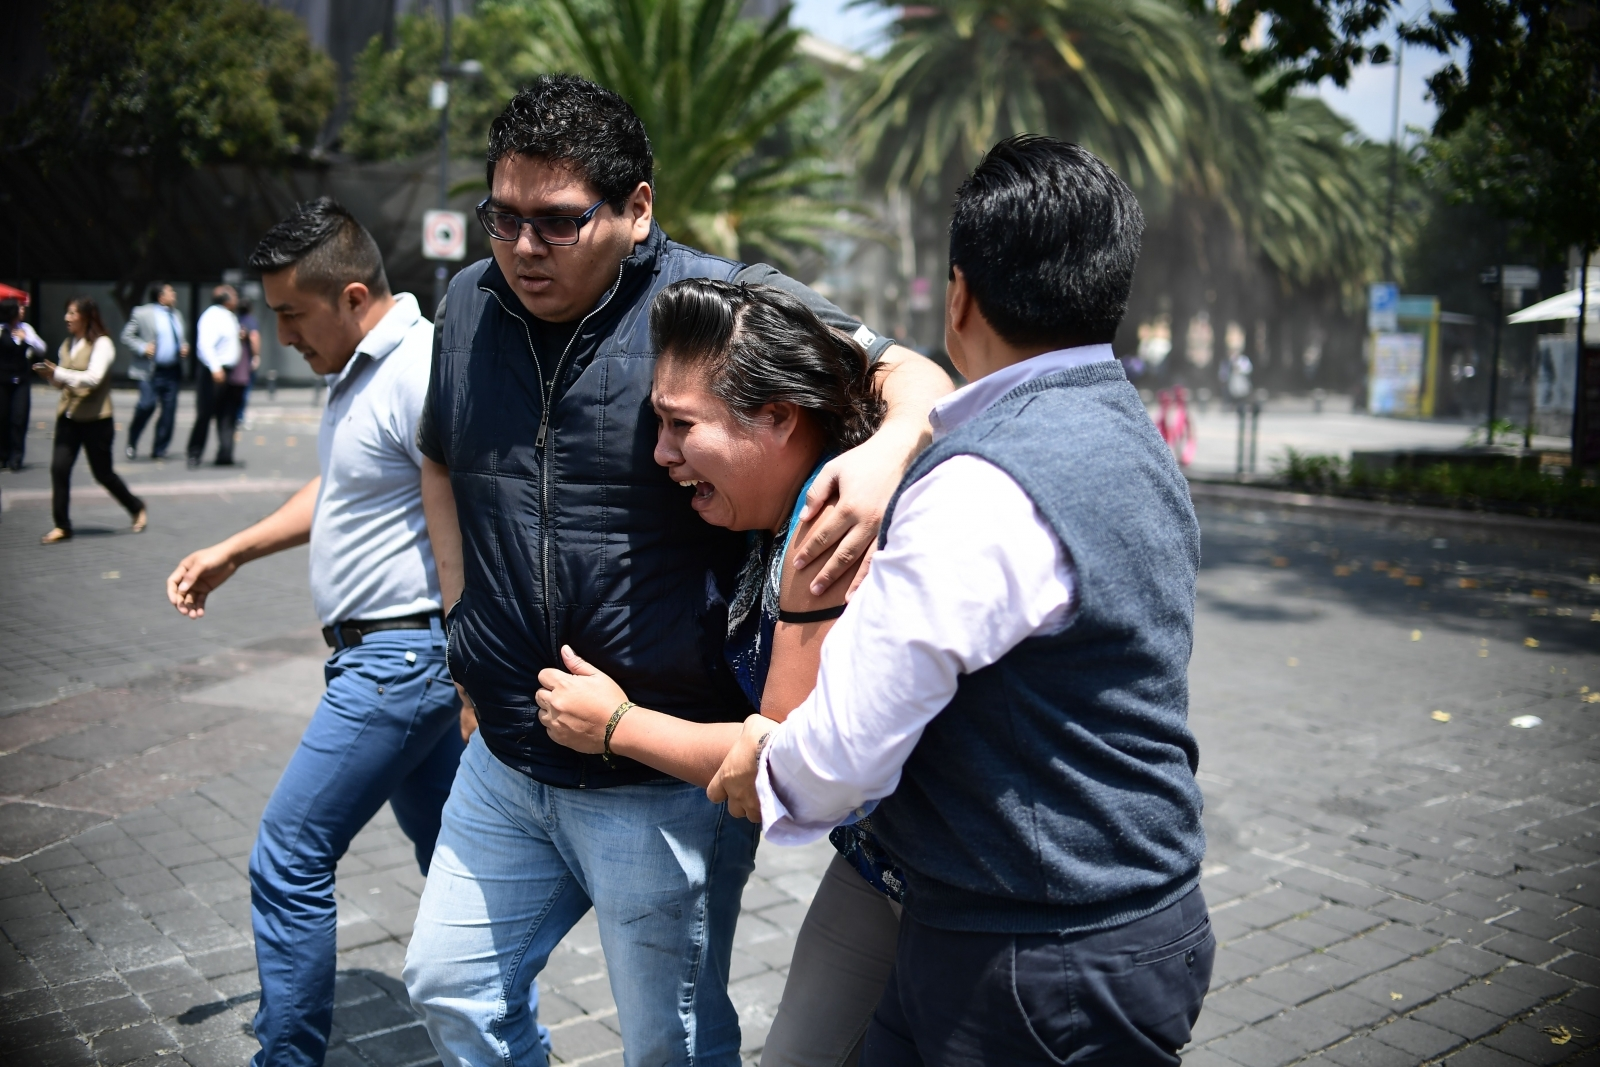 7.1-magnitude earthquake hits Mexico City on 32nd anniversary of tremor that struck capital